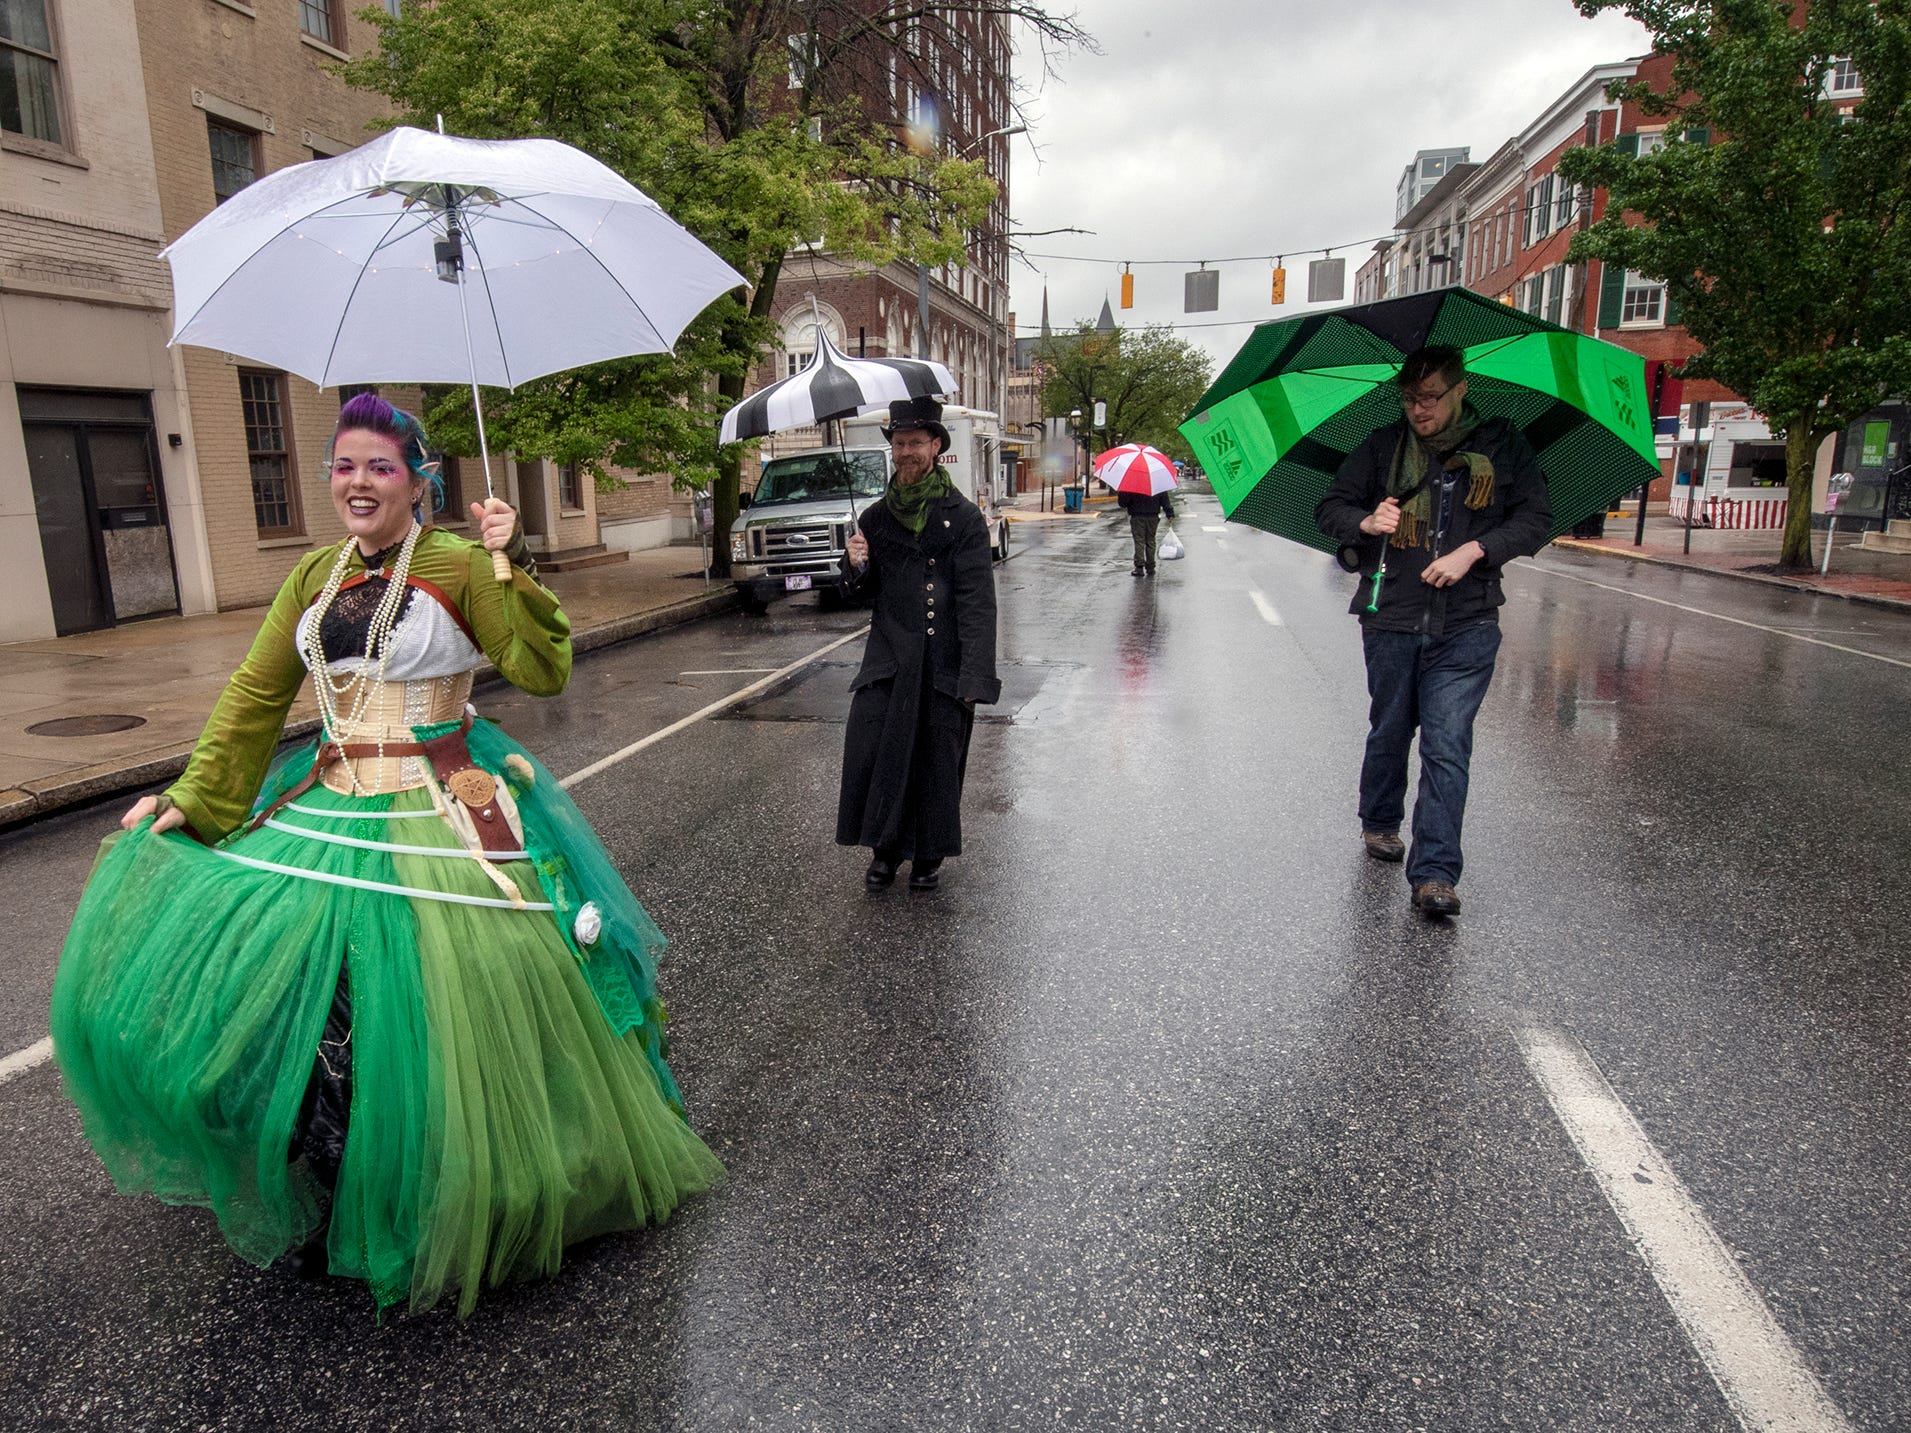 Umbrella clad performers stroll down East Market Street during the 44th Annual Olde York Street Fair.